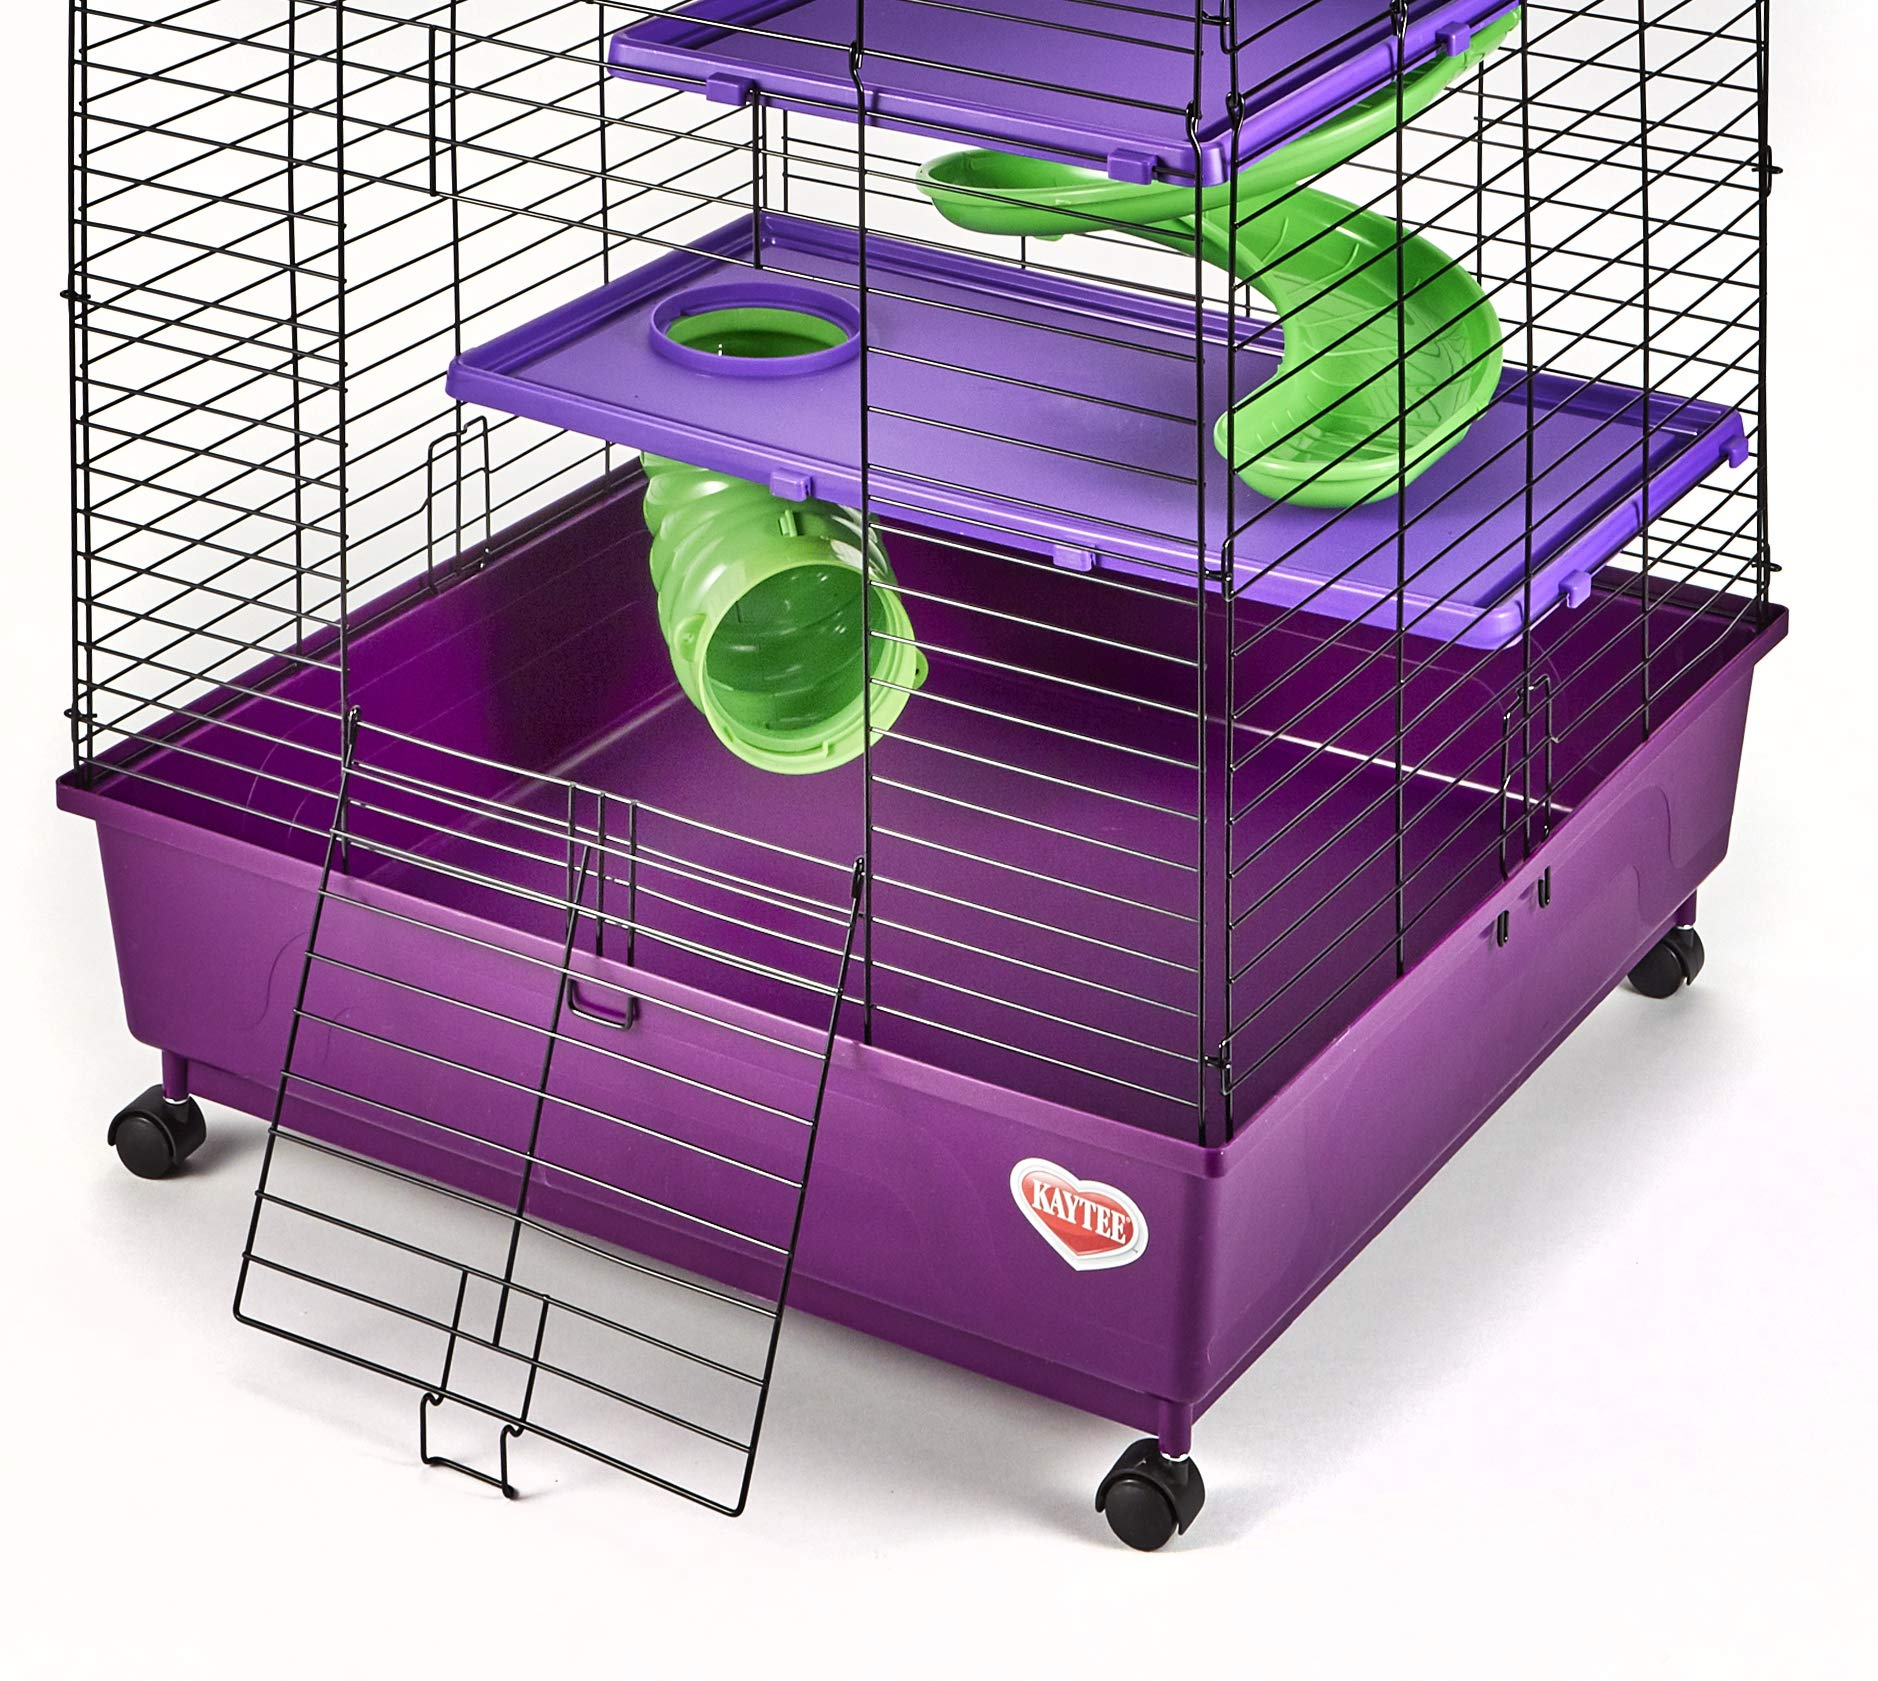 Kaytee My First Home Deluxe 2X2 Multi-Level with Casters 6